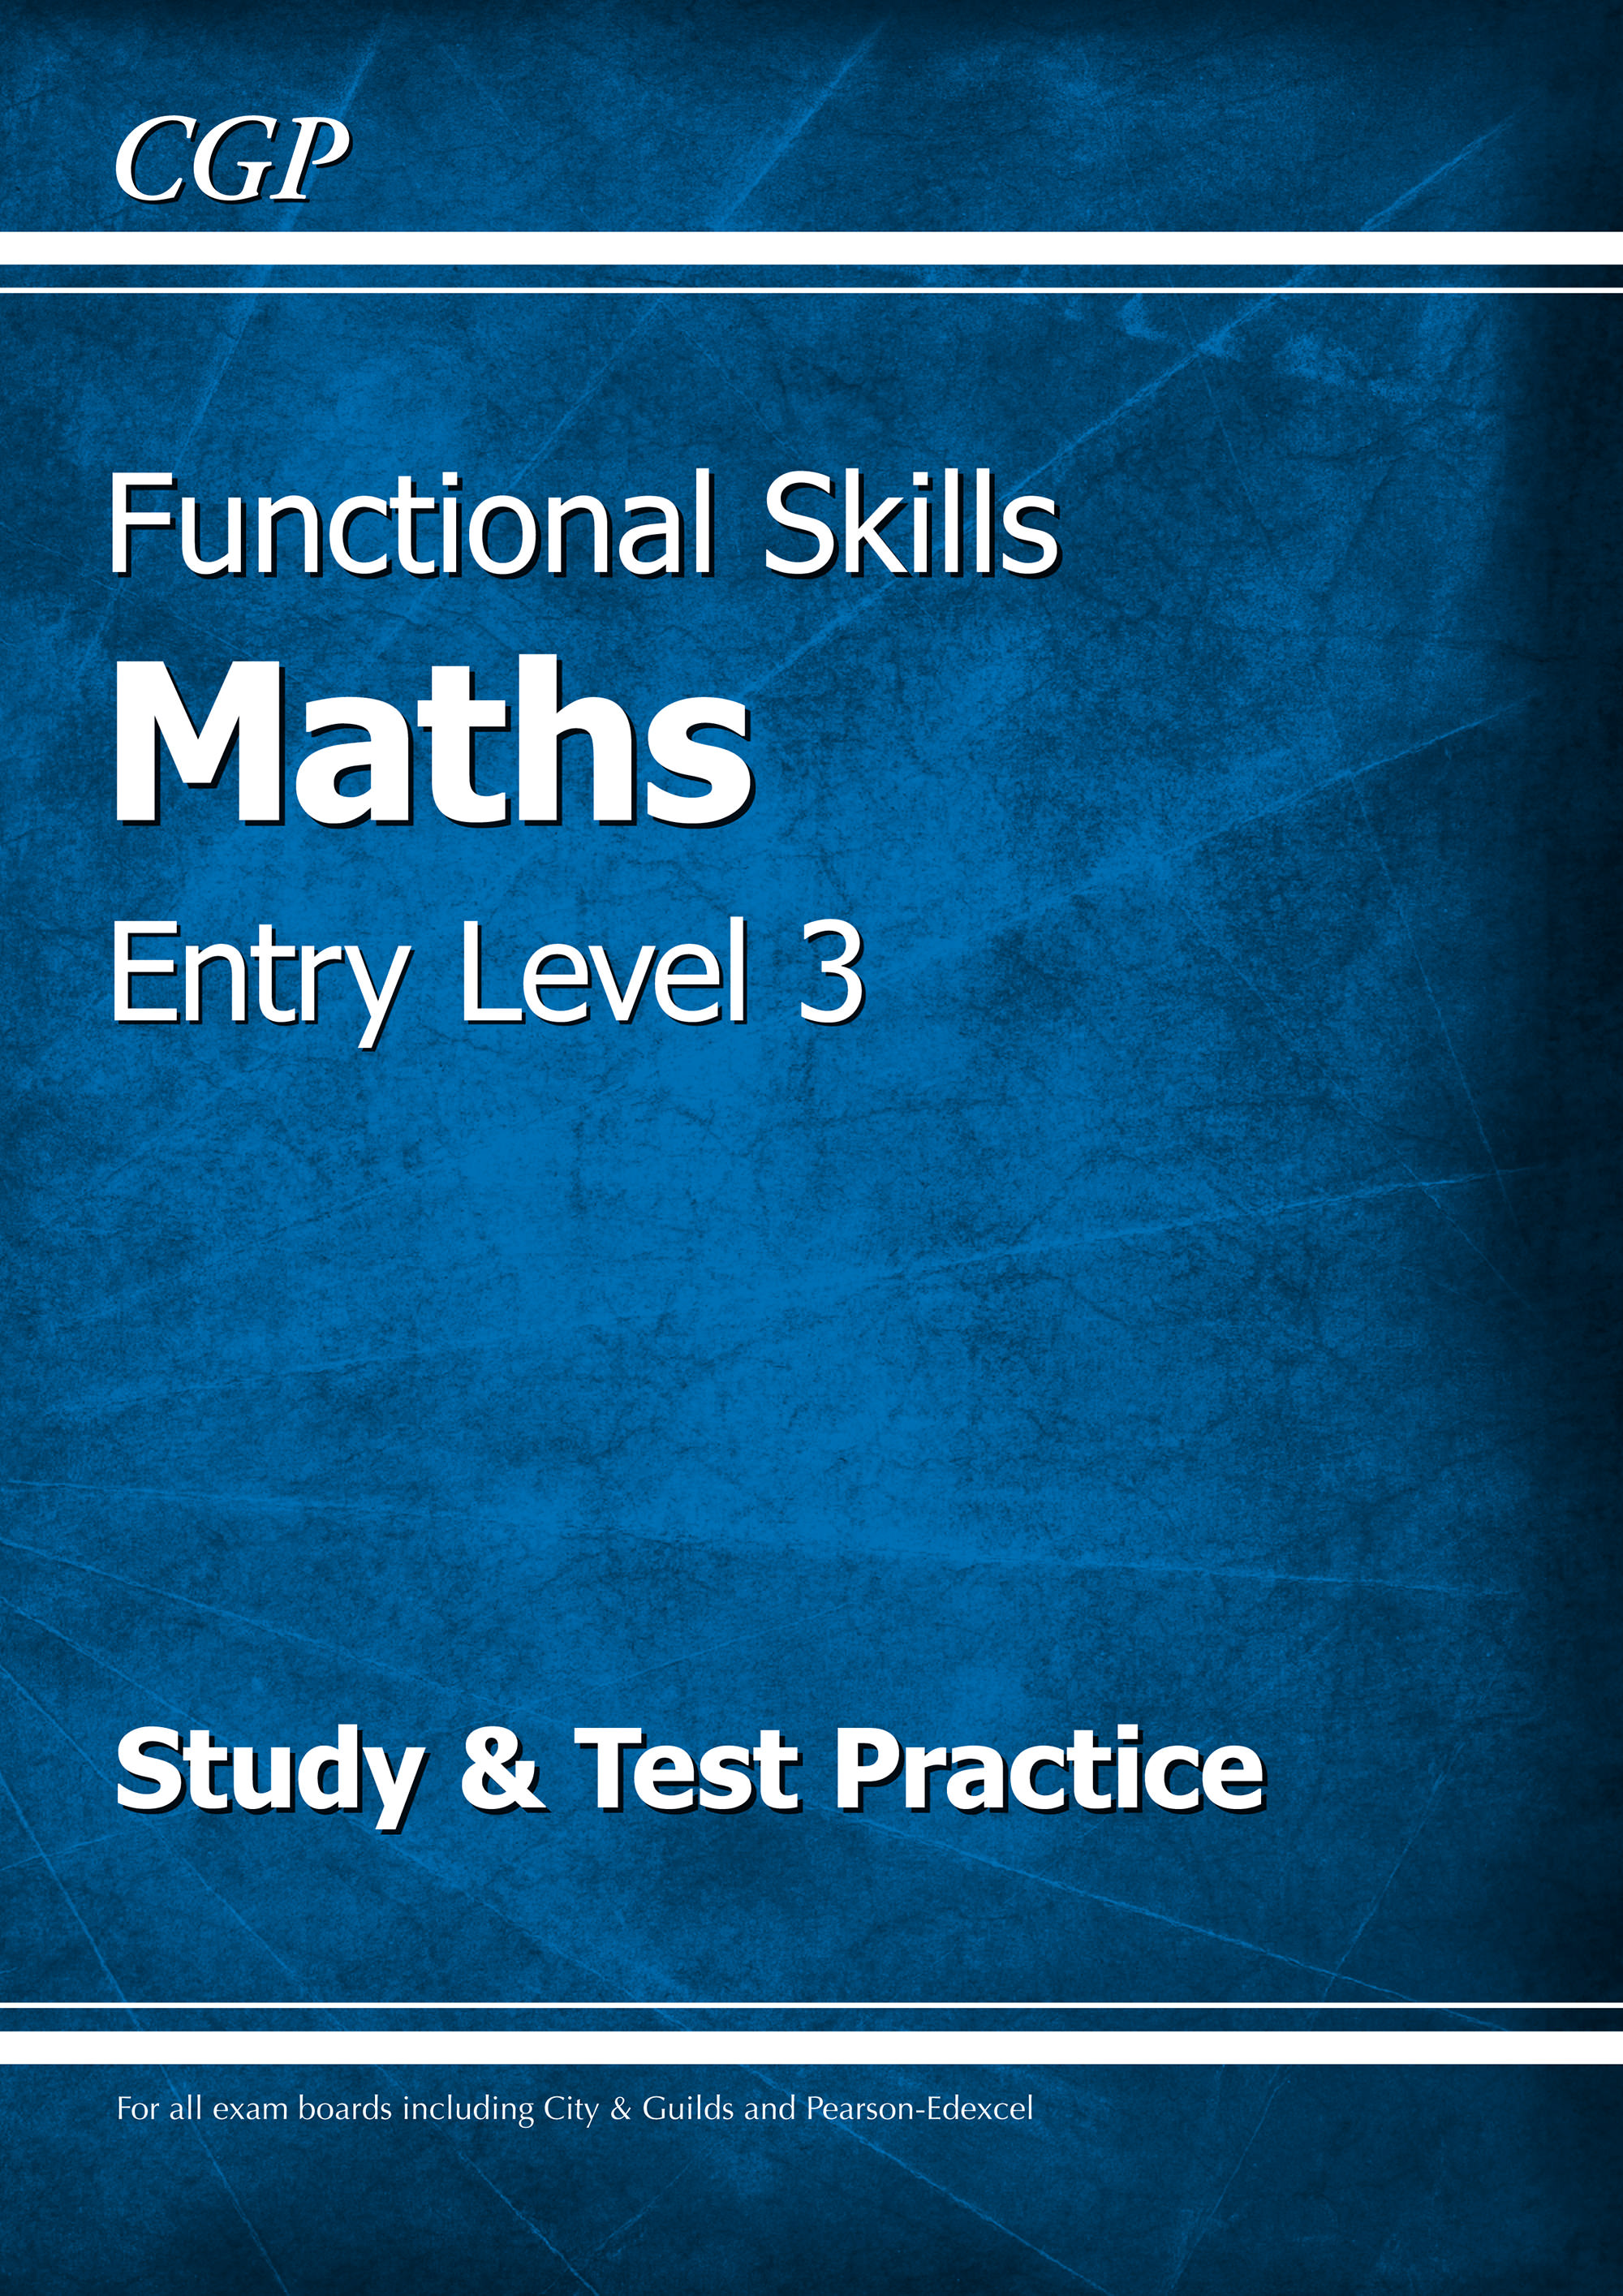 M3SRA2 - Functional Skills Maths Entry Level 3 - Study & Test Practice